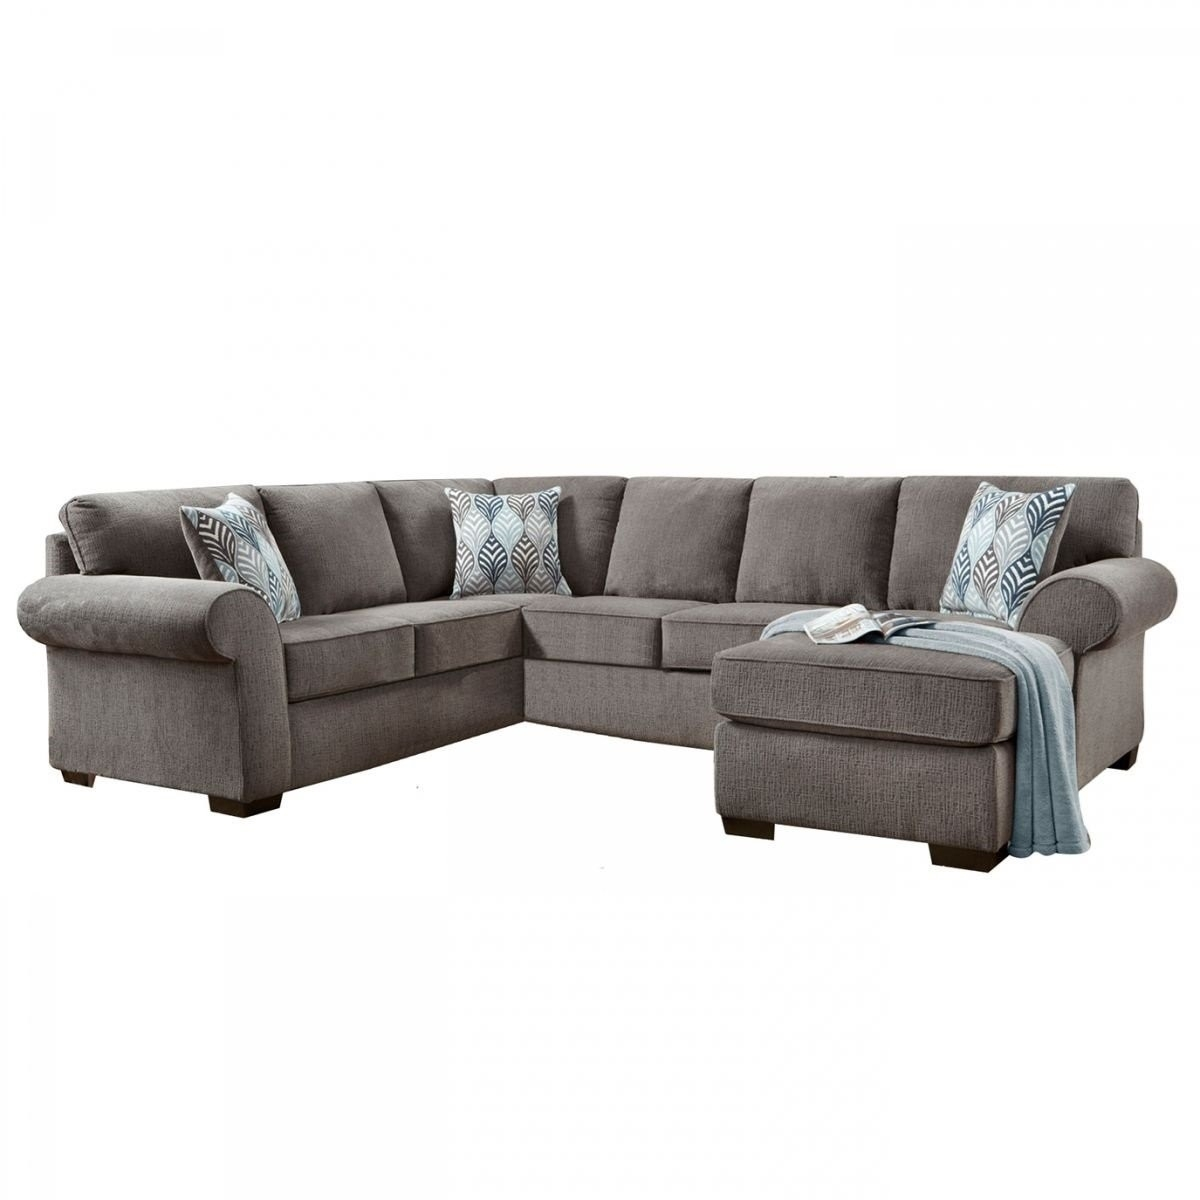 Grey Sectional Alder 4 Piece Living Spaces 89893 2 Jpg W 446 H 296 pertaining to Alder 4 Piece Sectionals (Image 16 of 30)